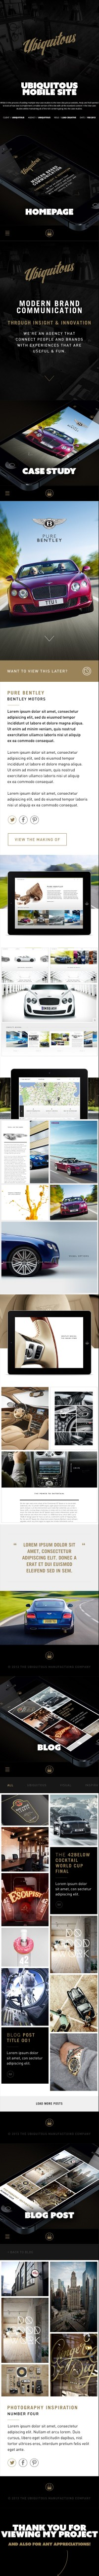 Web Design / Ubiquitous Mobile Site on Behance — Designspiration